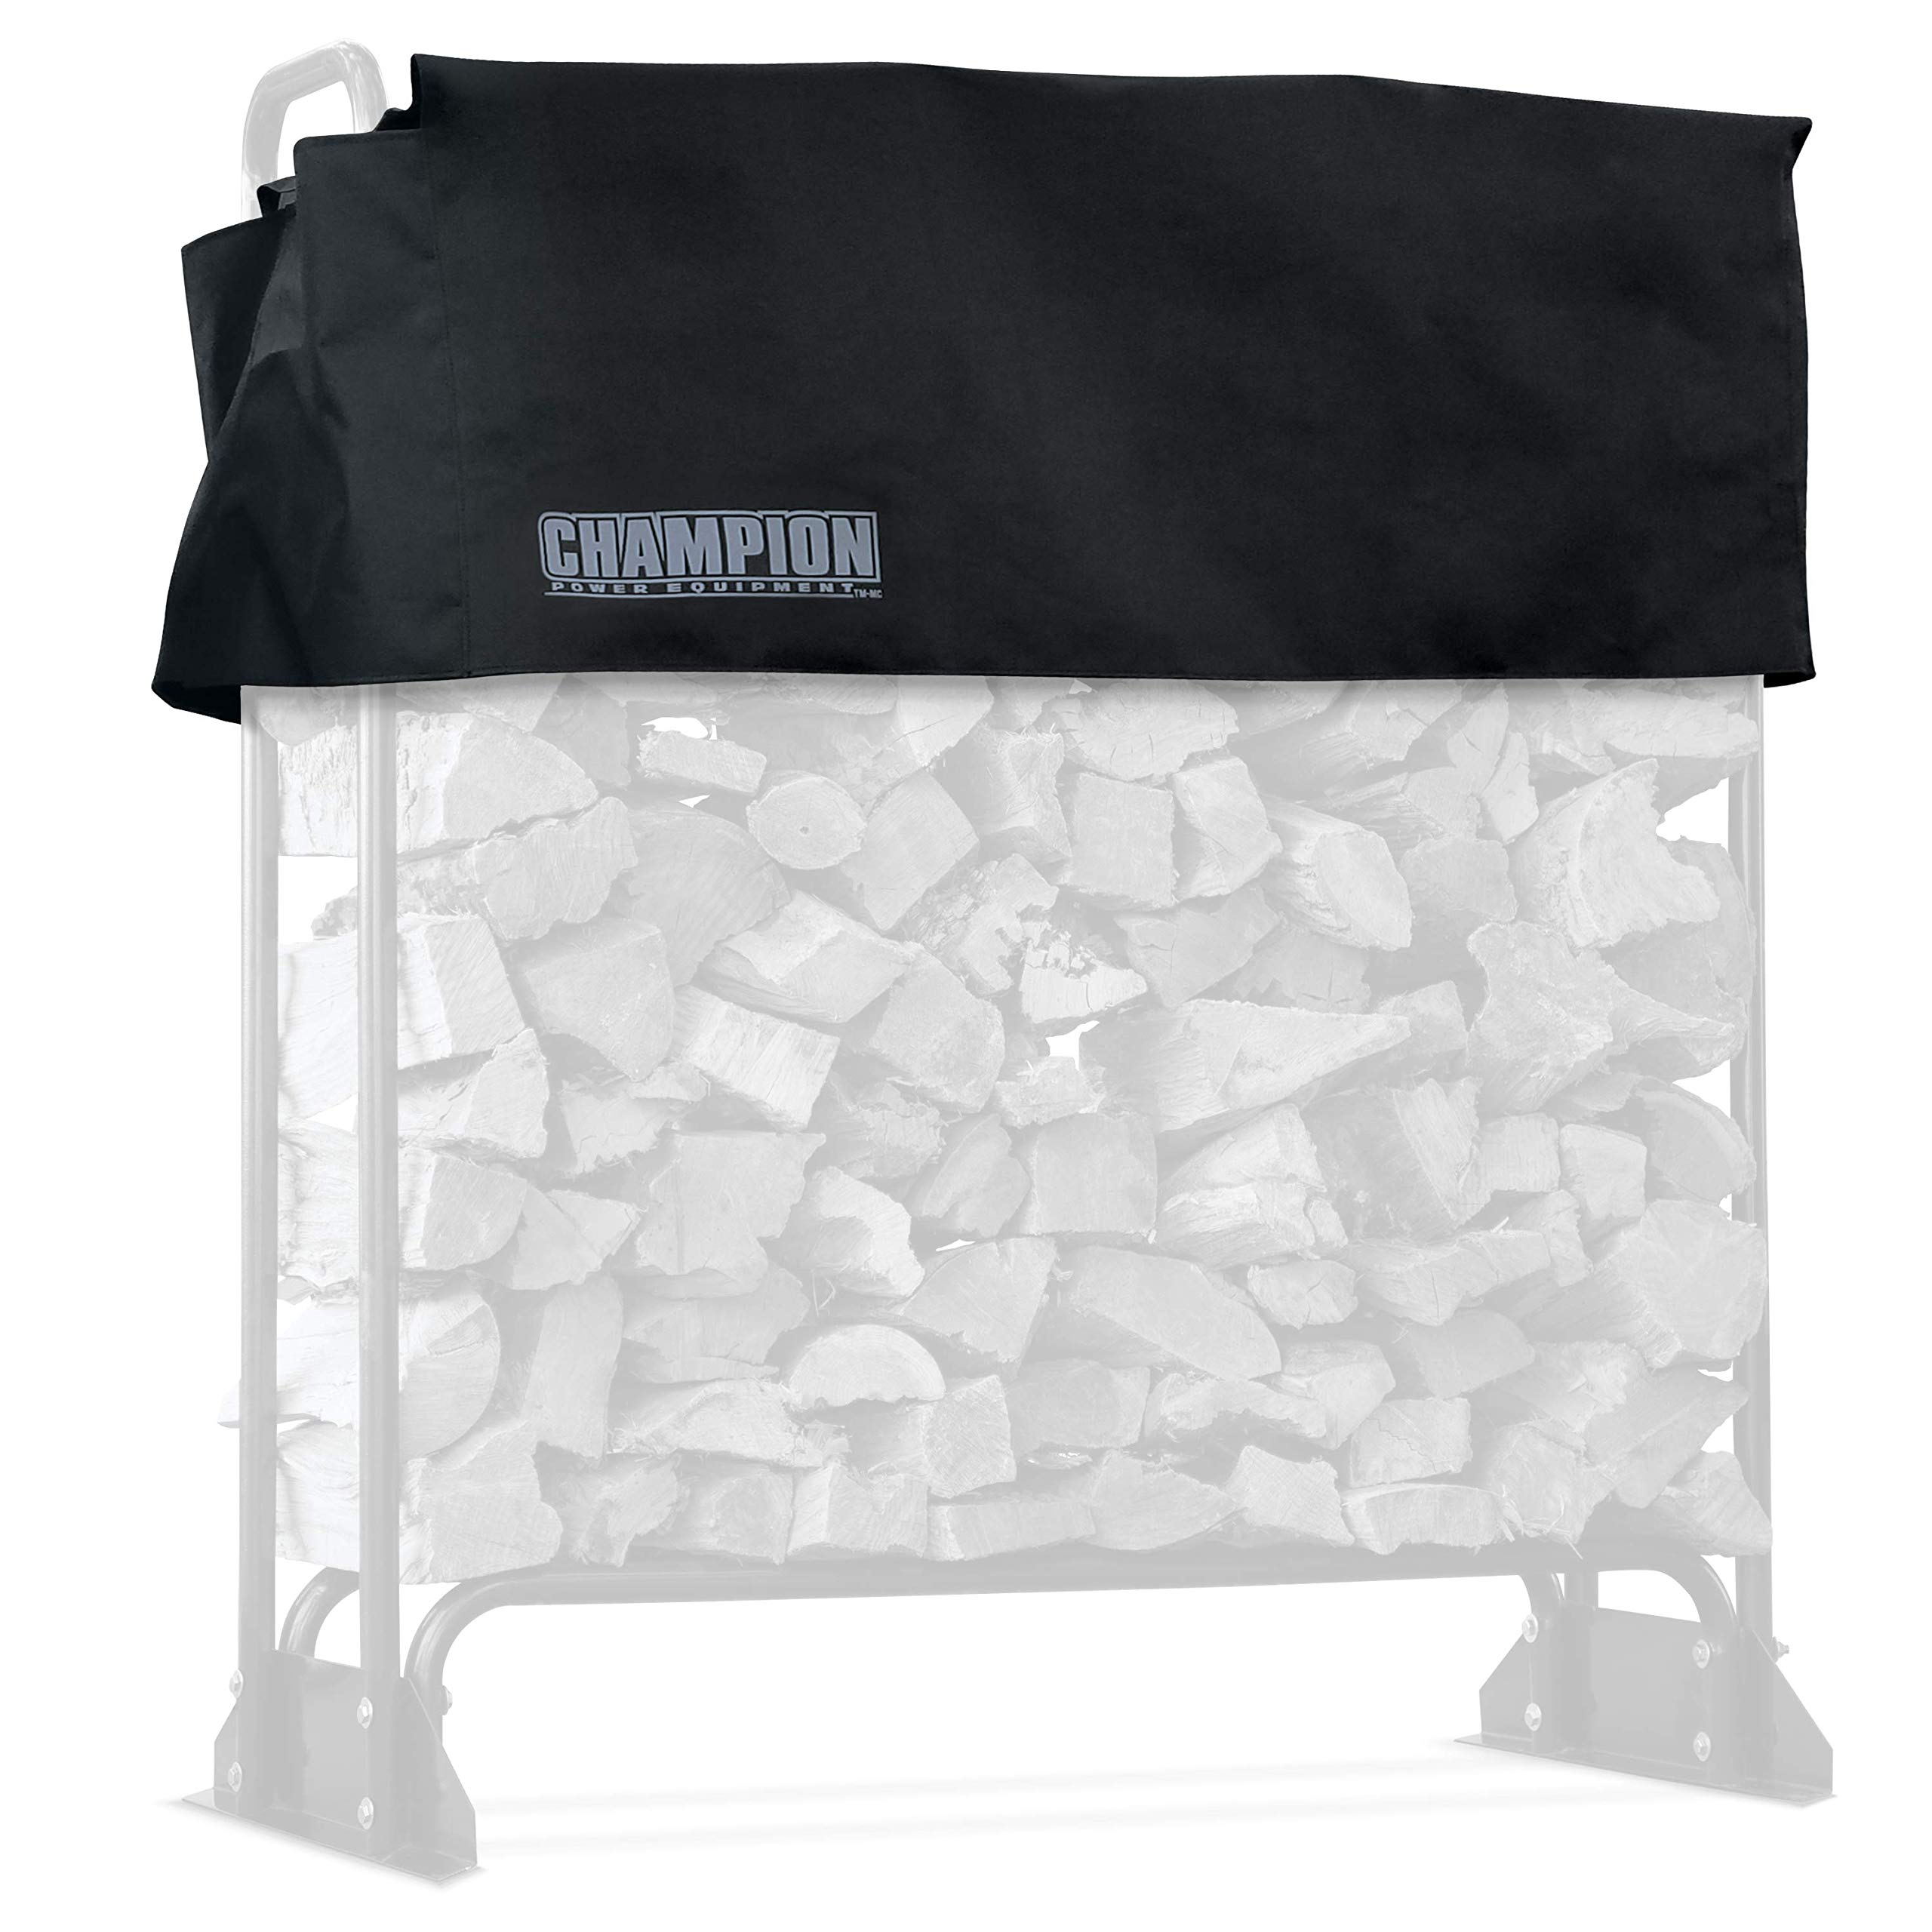 Champion 48-inch Firewood Rack Cover